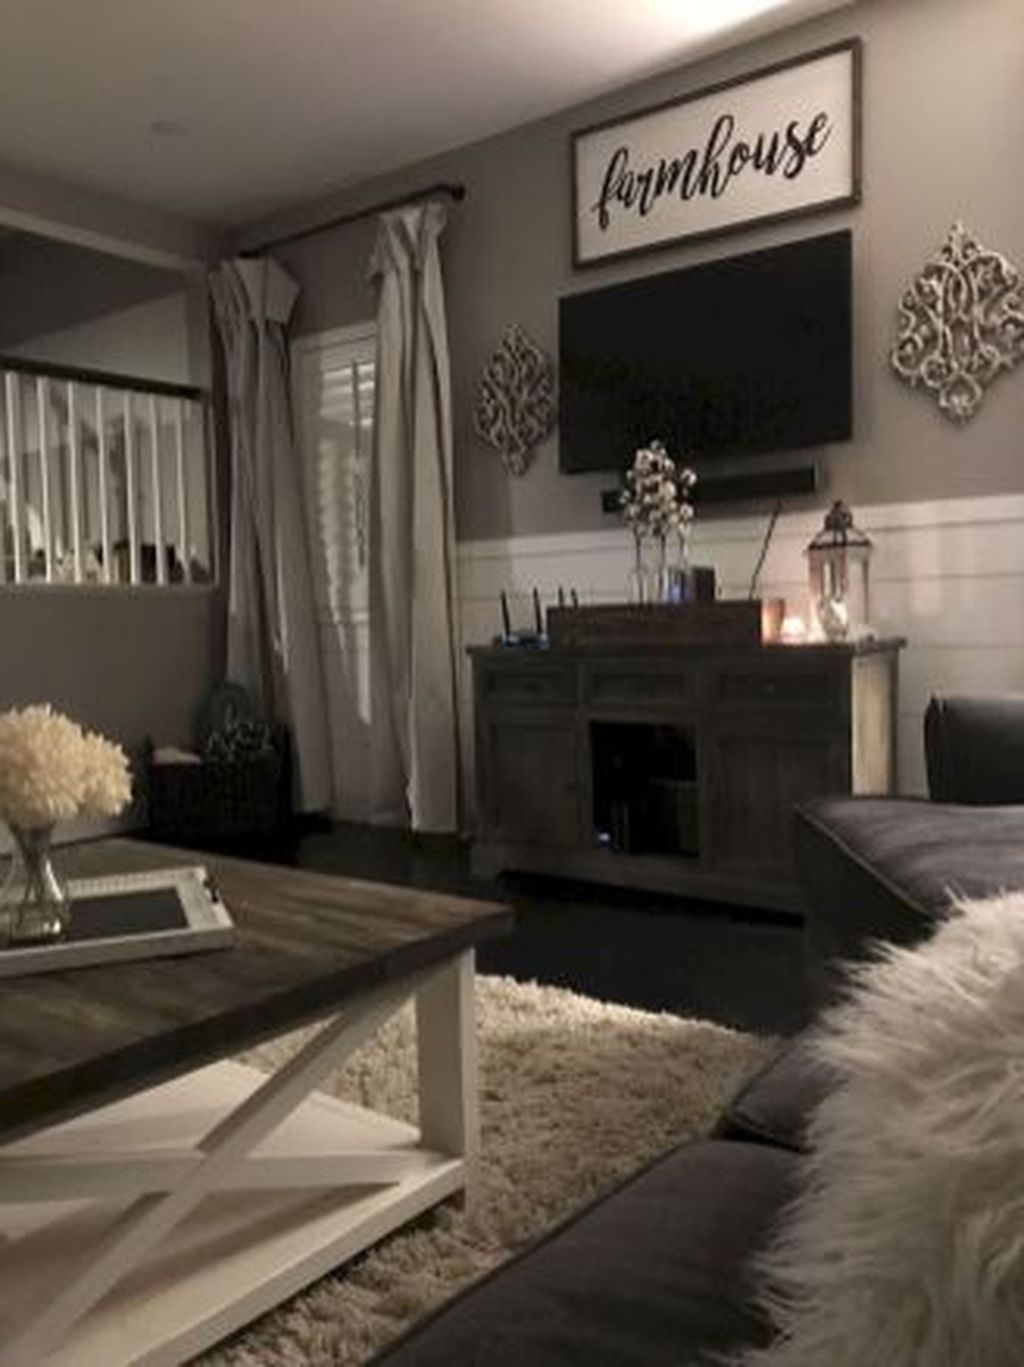 Pin By Trend4homy On Trending Decoration In 2019: Pin By Homishome On Trending Decoration In 2019